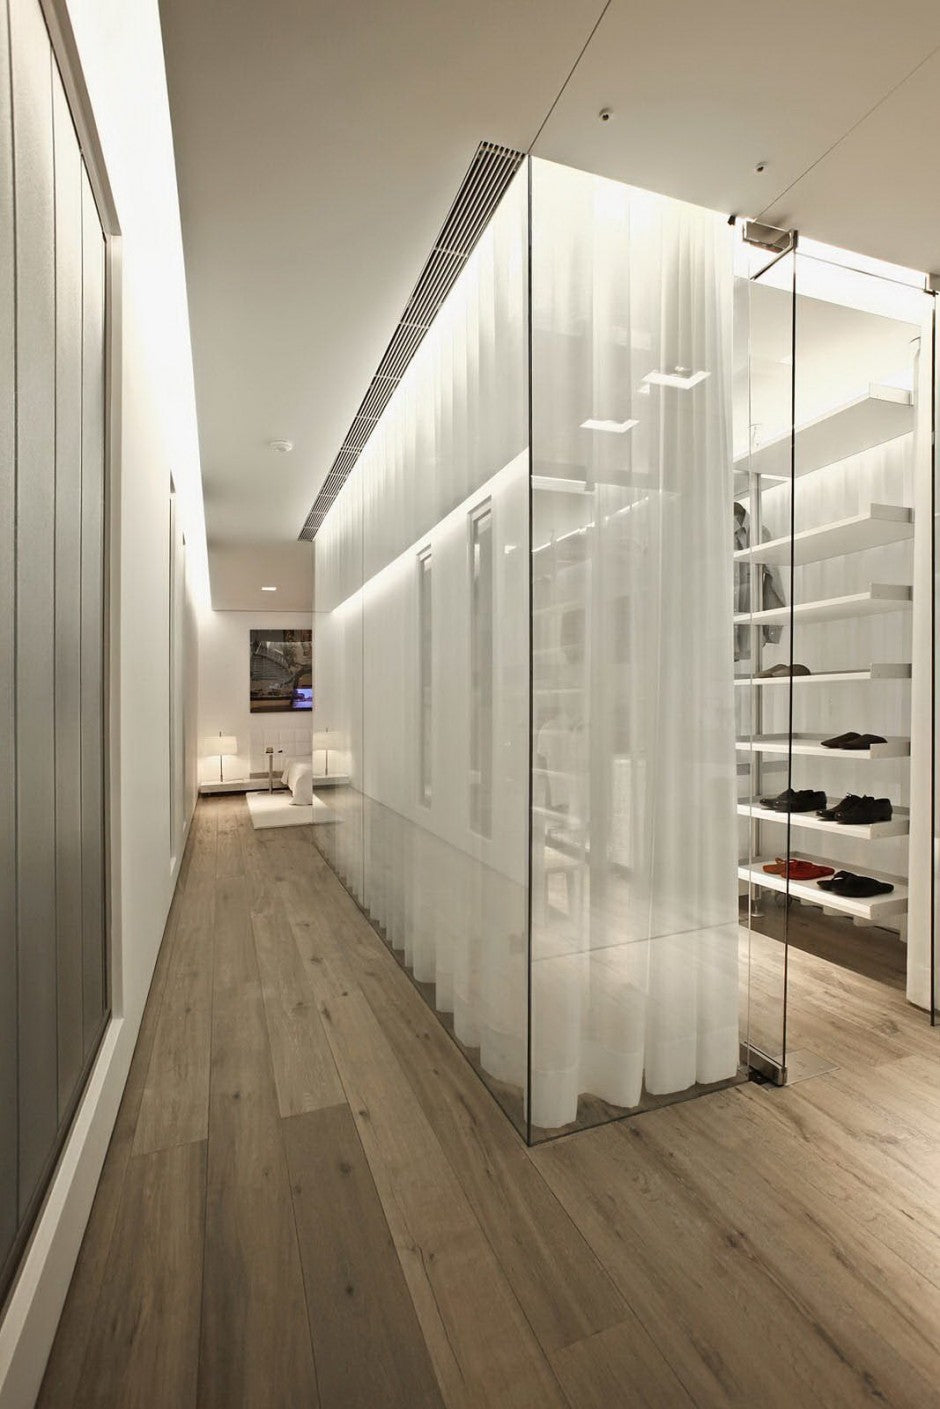 The use of natural and artificial lighting of the s house makes it a standout among other modern homes case in point is the walk in closet which has ample